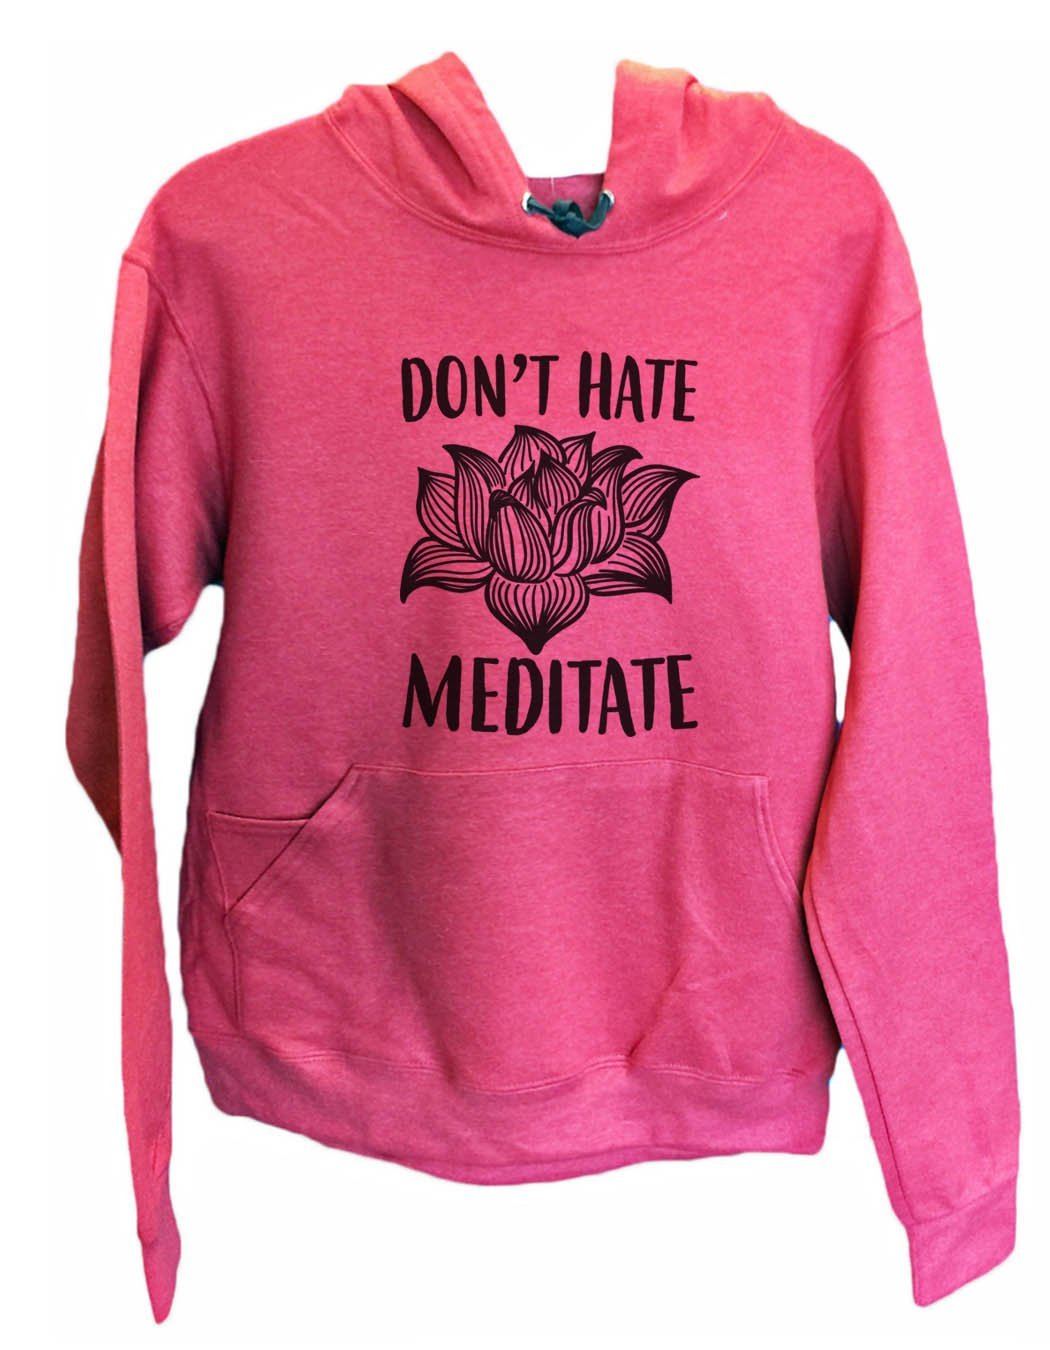 UNISEX HOODIE - Don't Hate Meditate - FUNNY MENS AND WOMENS HOODED SWEATSHIRTS - 2114 Funny Shirt